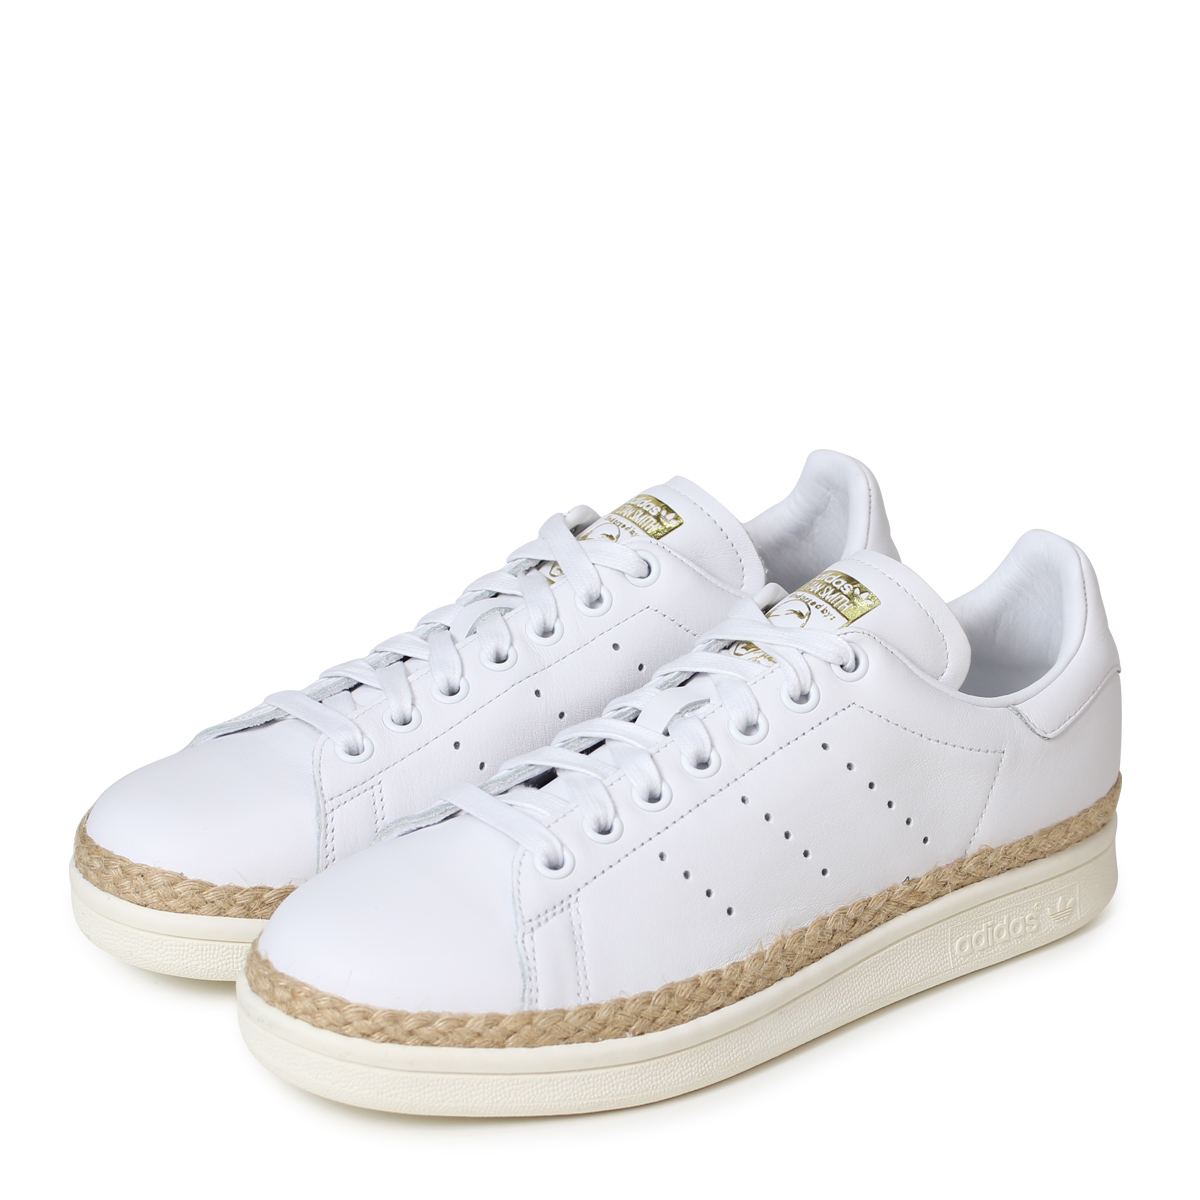 59 Stan Cq2439 Adidas New Shinnyu Product Smith Load Bold Reservation W Originals Whiteload In Sneakers Planned Lady's yYbmI76vfg